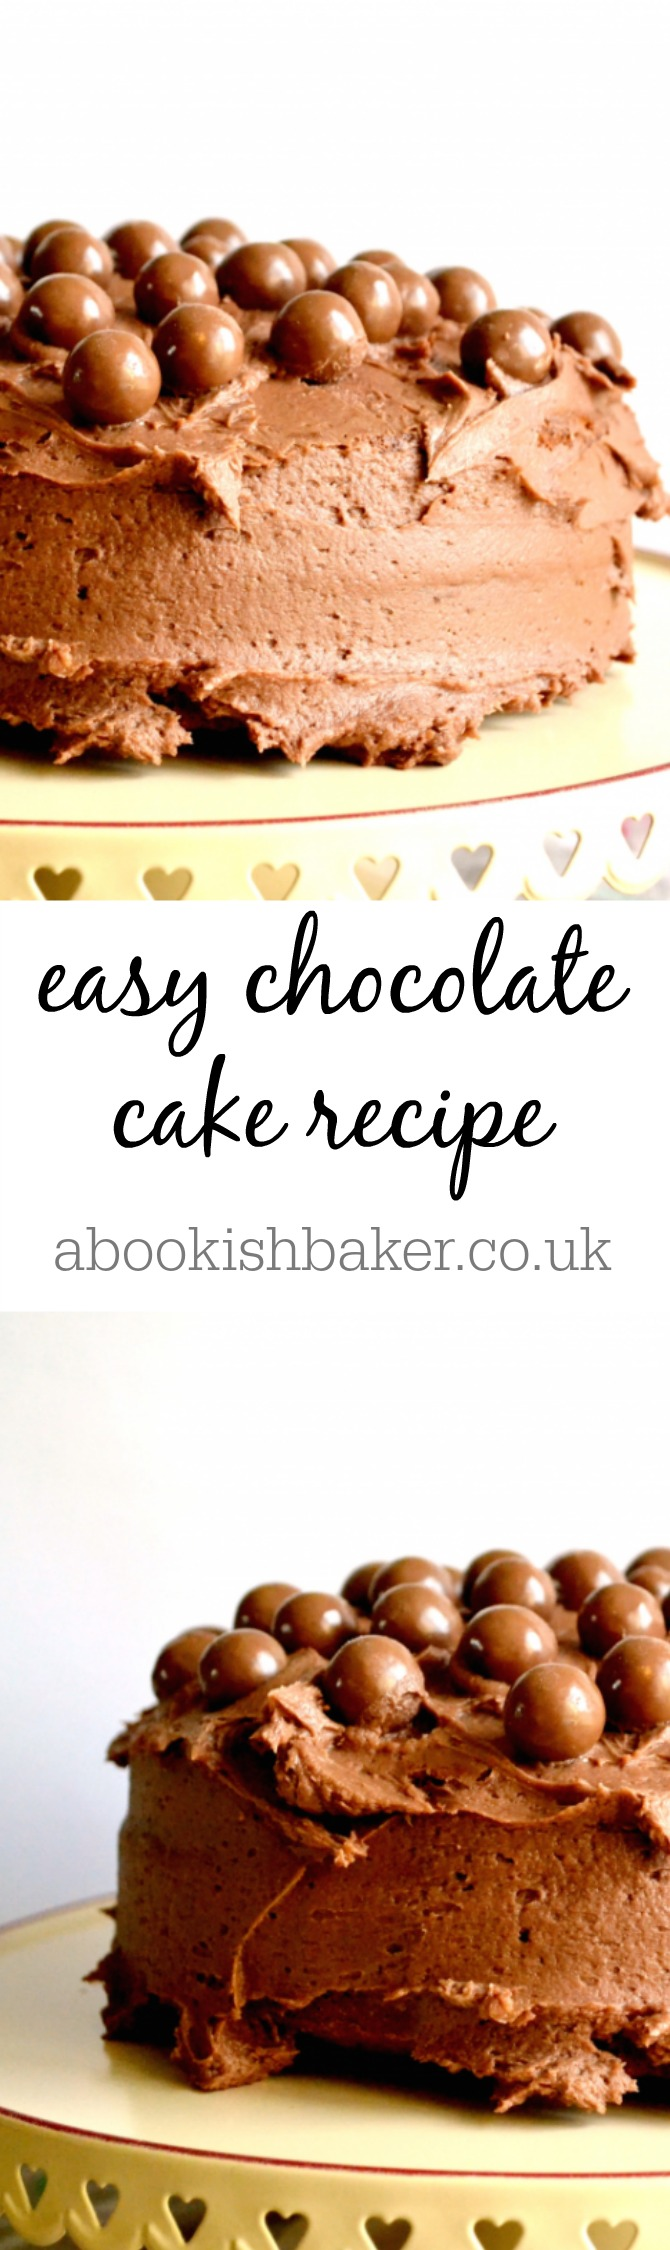 easy chocolate cake recipe - extremely delicious. Great for bake sales, coffee mornings, tea time treats and dessert. http://abookishbaker.co.uk/